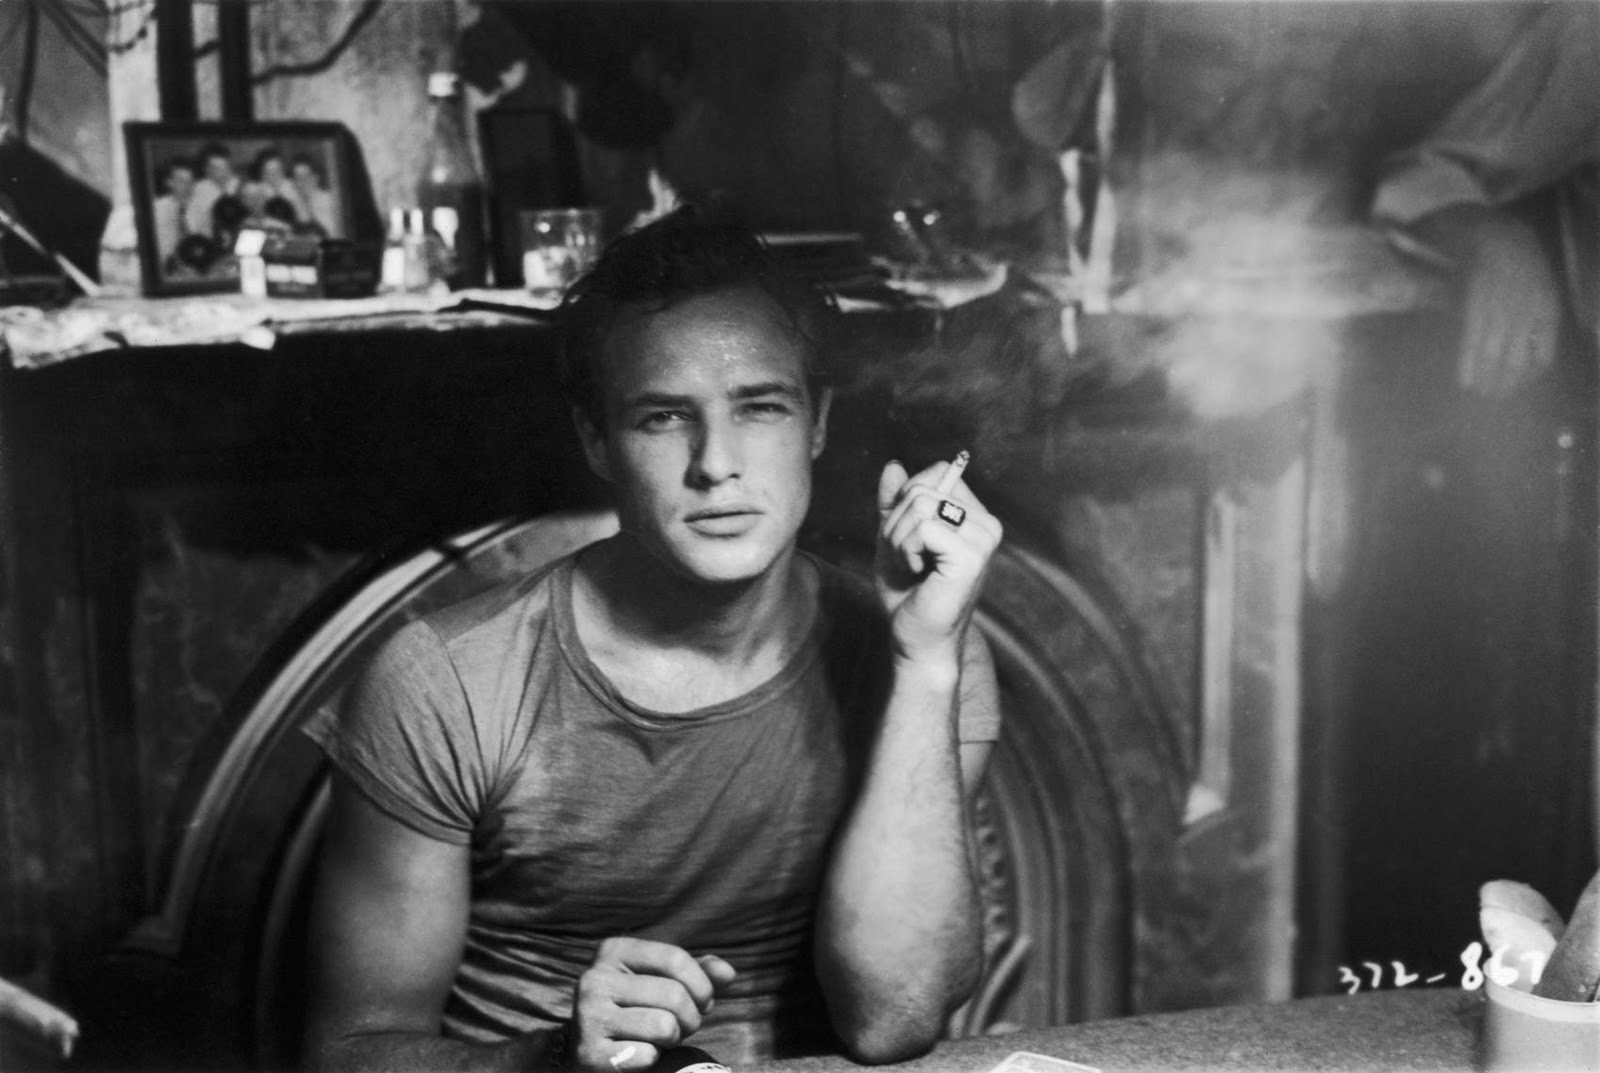 man sitting and smoking a cigarette with the smoke wafting around him,